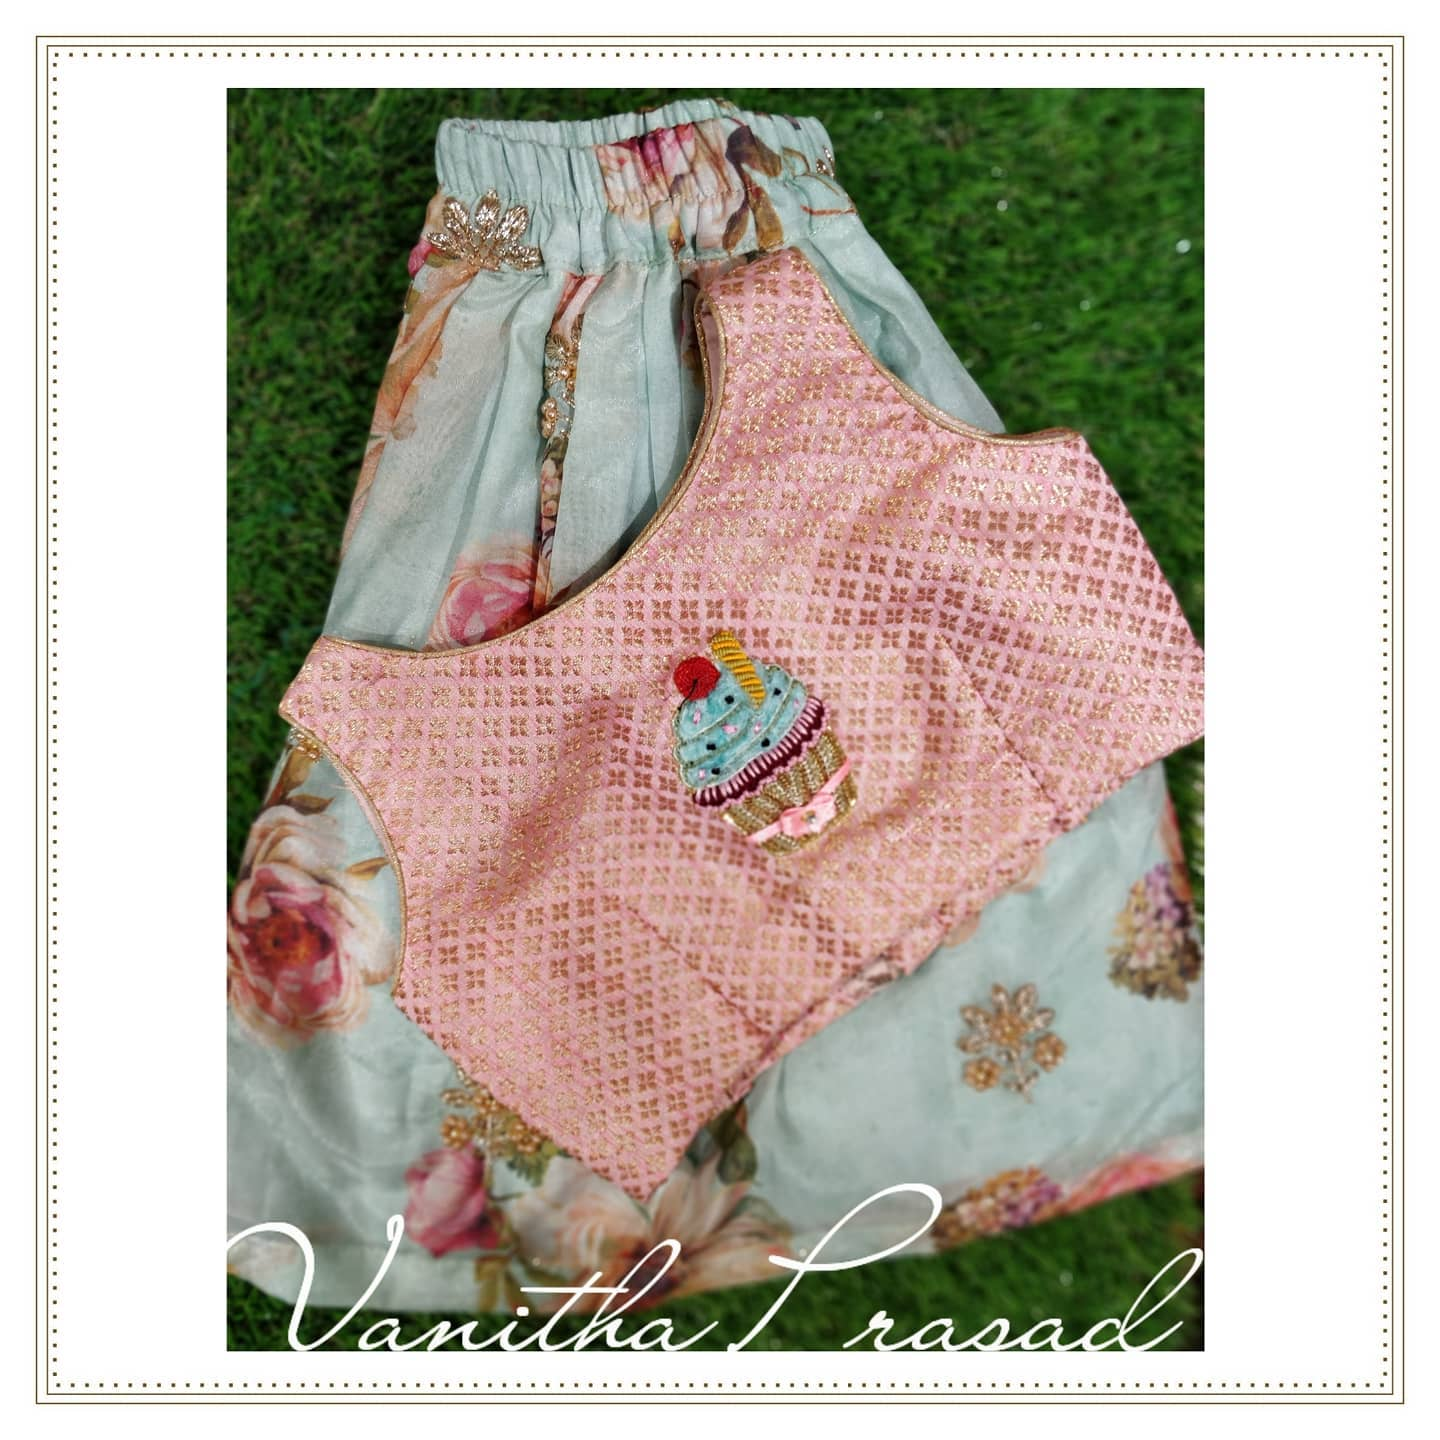 Pastels floral and a yummy cupcake  for this cutest little. Beautiful floral kids skirt and crop top with hand embroidery cup cake on yoke.  2021-07-20